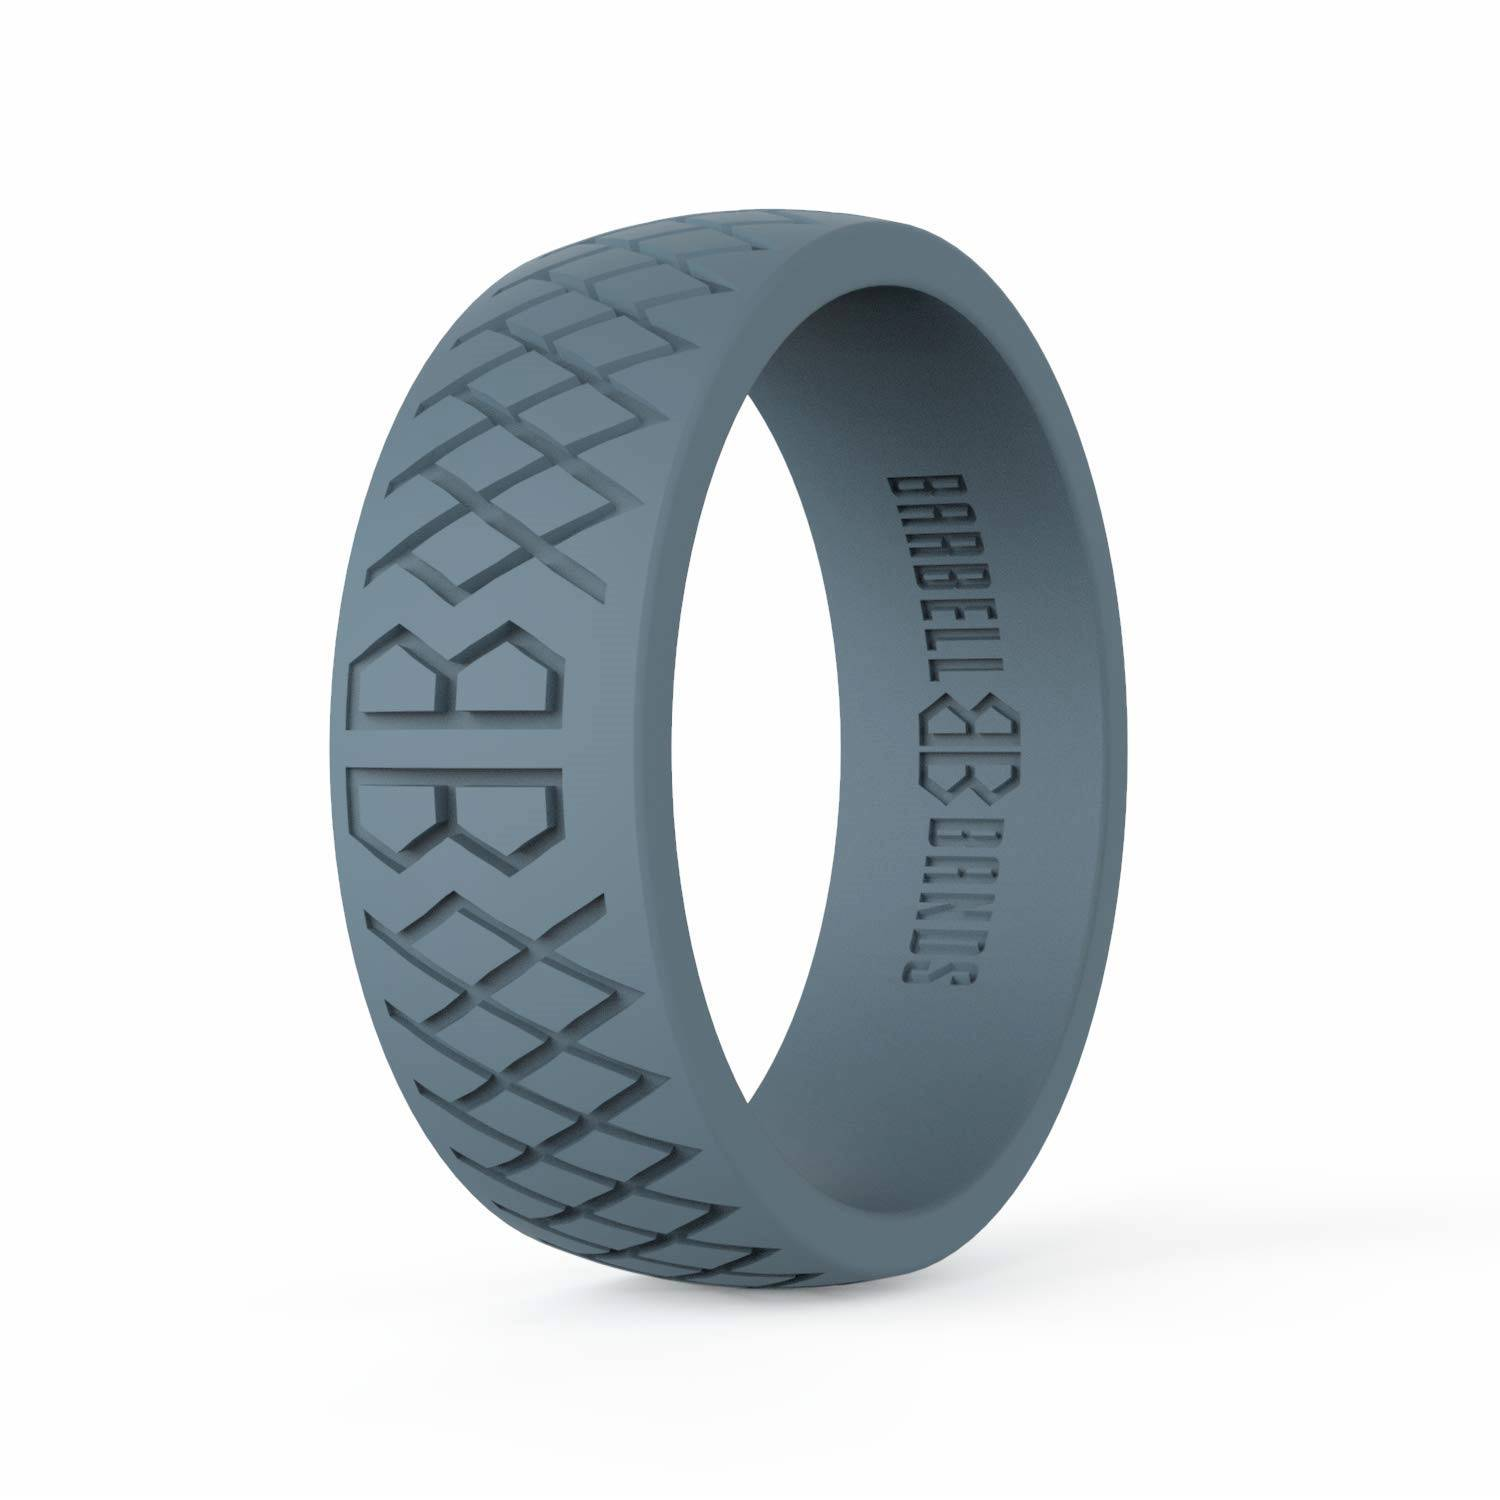 Hypoallergenic Comfortable Safety Rubber Ring Ideal Silicone Wedding Ring Gift for Him Her TUF Silicone Ring for Women Men Rubber Wedding Band Medical Grade Unisex Sturdy Exercise Ring